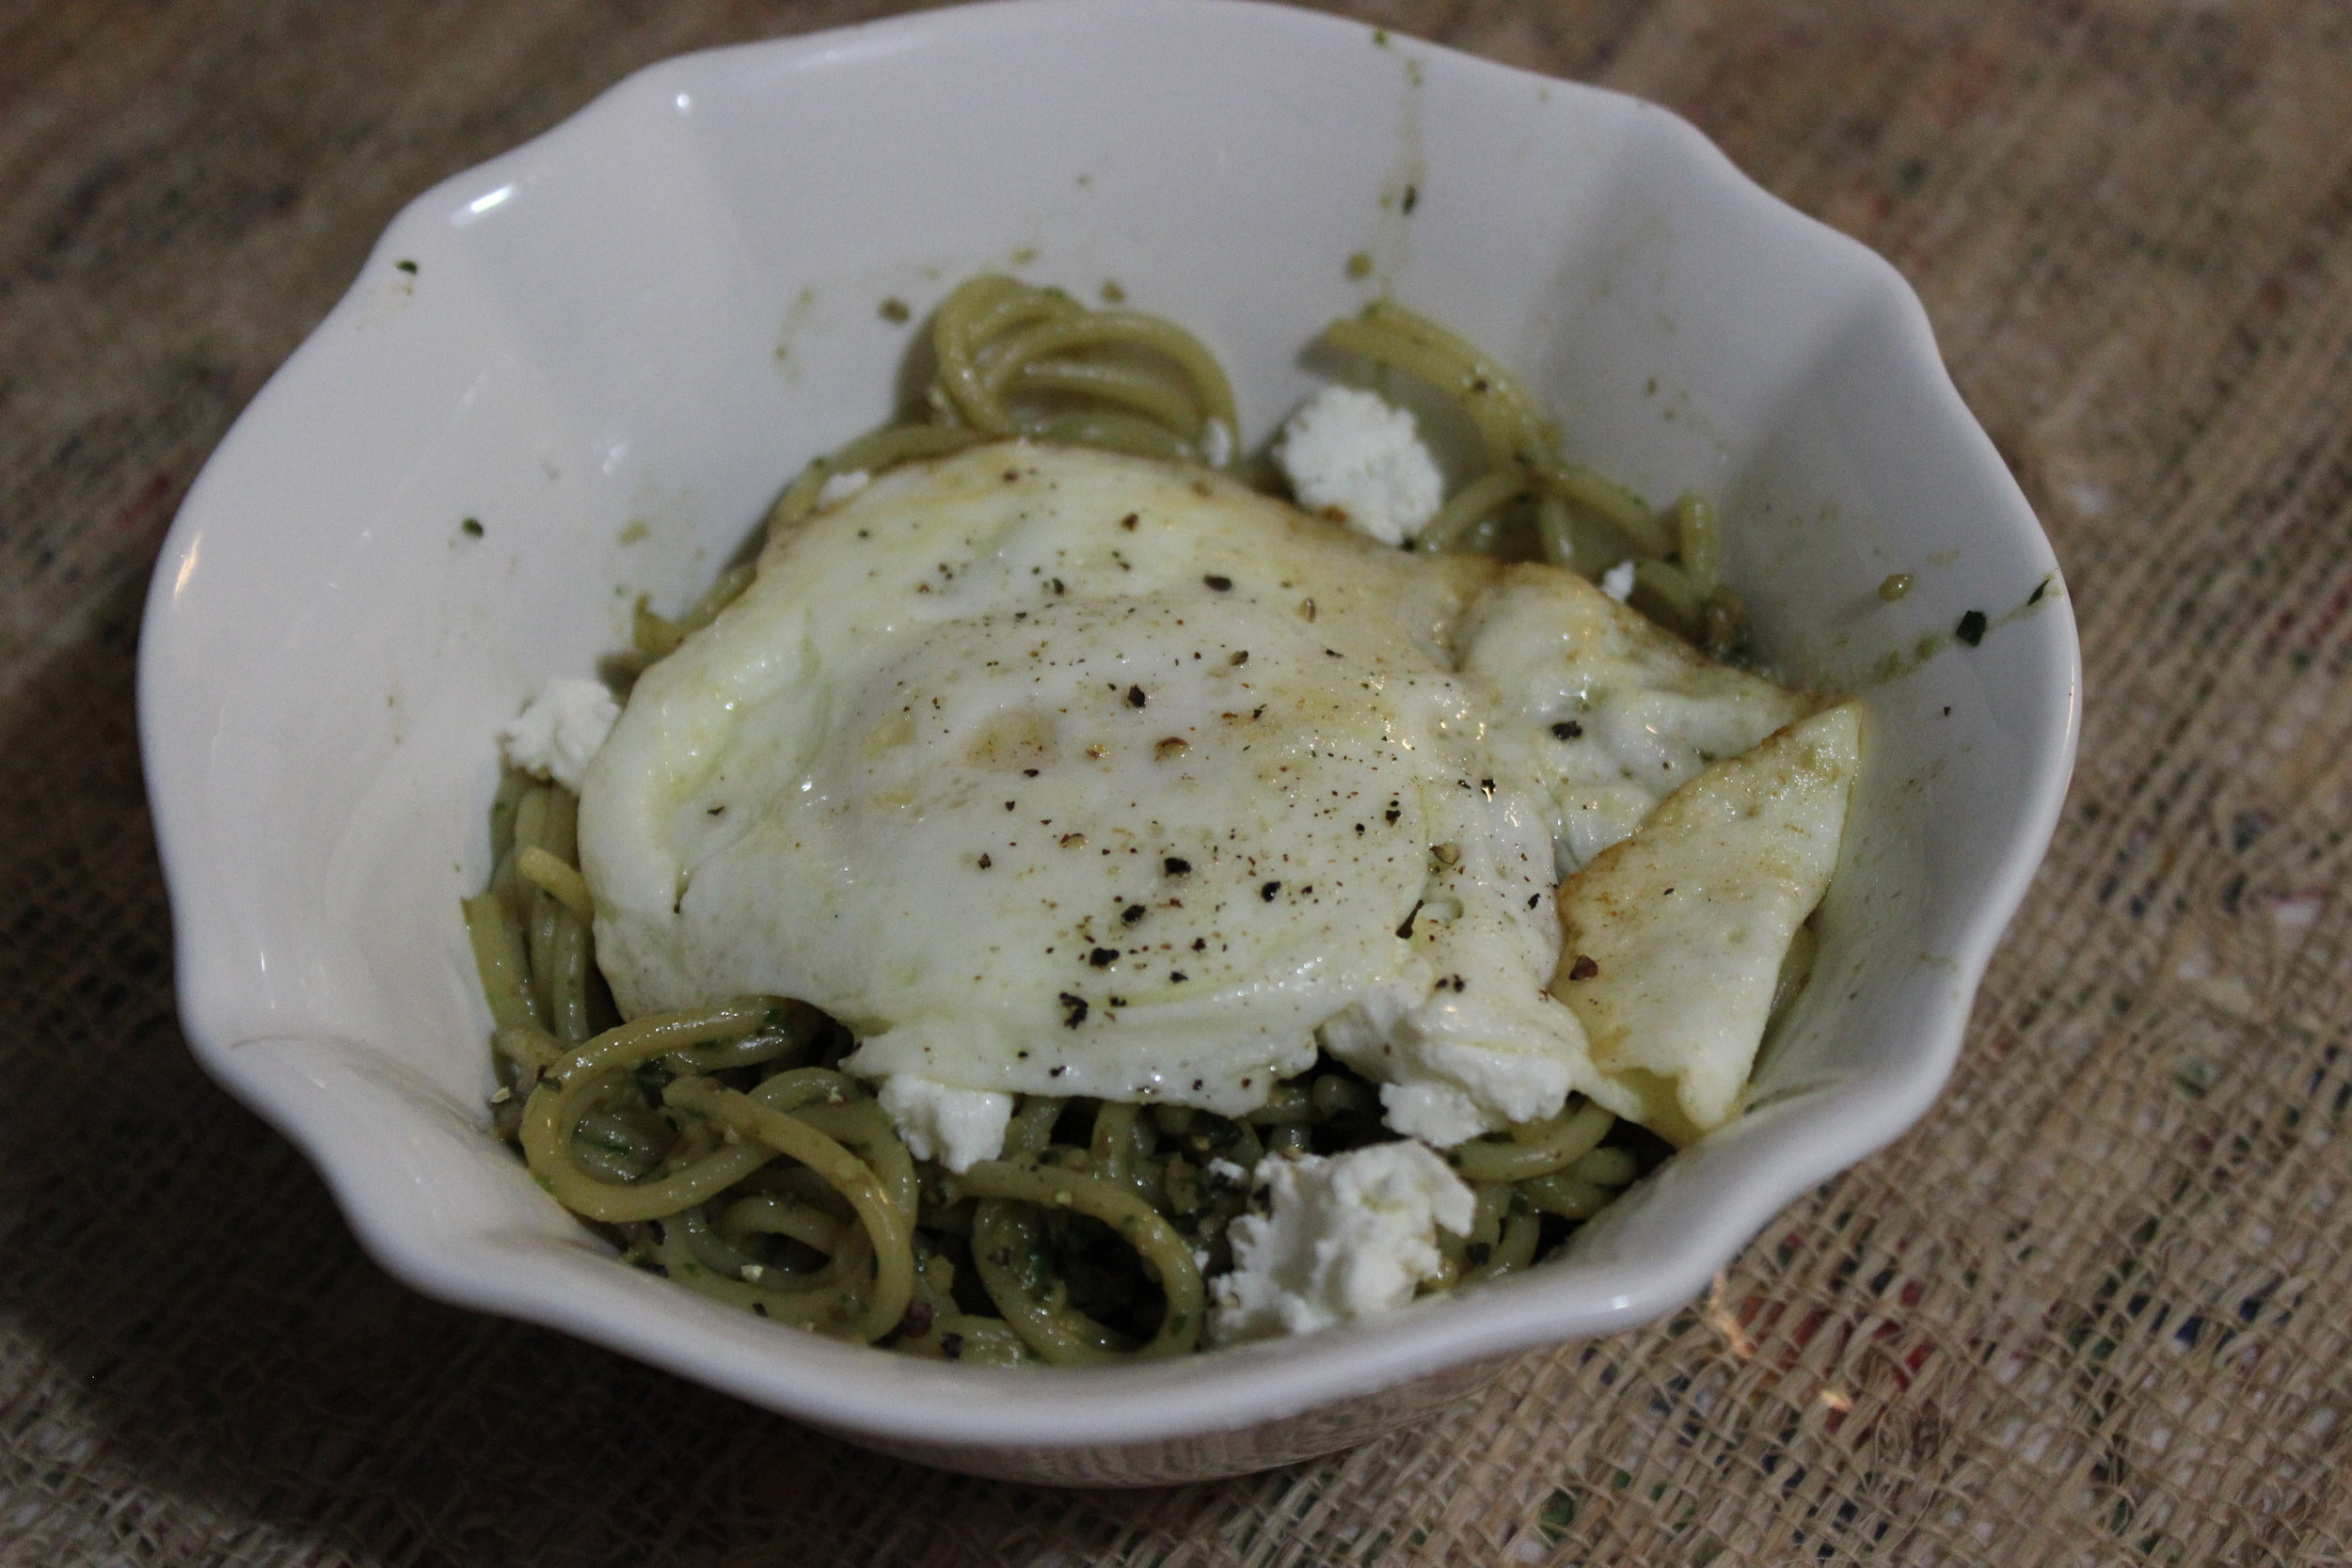 This was only one of our pesto fueled concoctions this time. It's simple. We tossed spaghetti in pesto, then topped it with goat cheese and a fried egg. I demolished my bowl about 5 minutes after I snapped this picture.